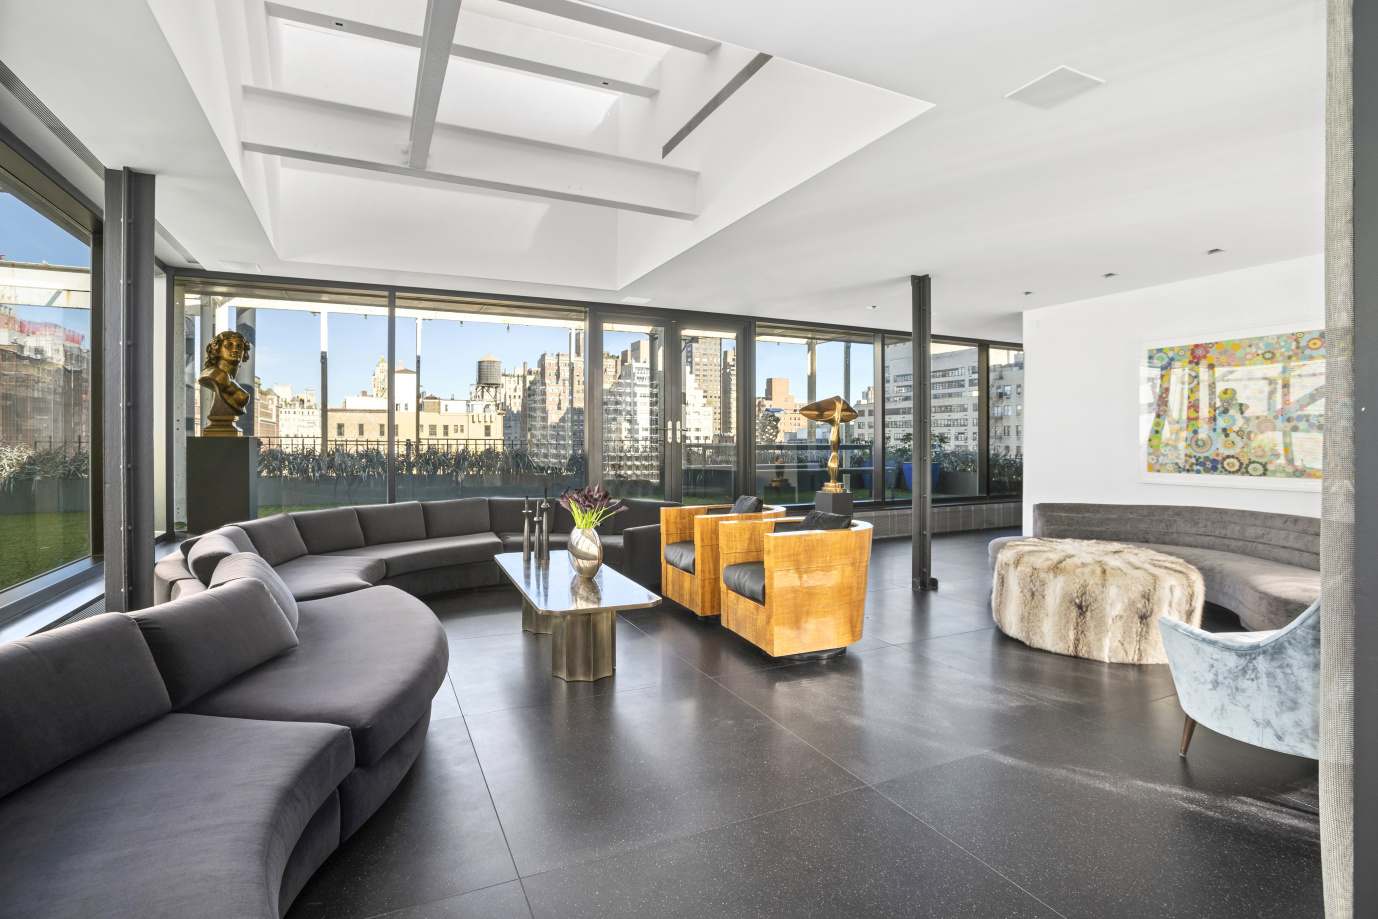 Come see the heights of Manhattan penthouse living at 45 East 66th Street, where one can purchase a renovation equal to those in the best new developments for less than half the cost. This open-concept duplex residence offers approx. 4,020 sq. ft. of living space surrounded by 3,455 sq. ft. of set-back terraces, ideal for sophisticated entertaining.  Featuring a flexible 4-5 well-proportioned bedrooms, 4.5 luxurious bathrooms, a corner living room with large skylight, an enormous dining area, a chef's dream kitchen with separate breakfast area, all surrounded by a wall of glass, filling the space with non-stop natural light. There is also a fully equipped laundry room, a media room or den, and work-station.  Features include multi-zone central air conditioning, soundproof architectural floors, private water pumps, and amply upgraded electric power, along with new windows. This sought-after co-op also allows 50% financing, and pets are welcome with board approval. 2.5% flip tax.  ENTRY Private elevator landing welcomes you to a windowed entry foyer.  LIVING ROOM Grand corner living room with large skylight and glass walls with access to terrace  DINING AREA An enormous dining area that can easily accommodate 30 guests making it a perfect setting for those unforgettable dinner parties. There is also an exquisitely designed powder room.  WINDOWED EAT-IN KITCHEN The kitchen, with a separate breakfast area features solid 4' thick marble countertops, stunning Arclinea copper cabinetry and drawers, a vented cooktop with oven and convection oven.  PRIVATE SPACES A Cerused Oak pocket door separates the entertaining space from the private living space, which has wide-plank Siberian oak floors throughout. There are three well-proportioned bedrooms, a media room, four luxuriously appointed bathrooms, three of which are en suite, and a utility/laundry room with two sets of vented washer & dryers. There is also a spacious work station lounge under the cantilevered stairway that l